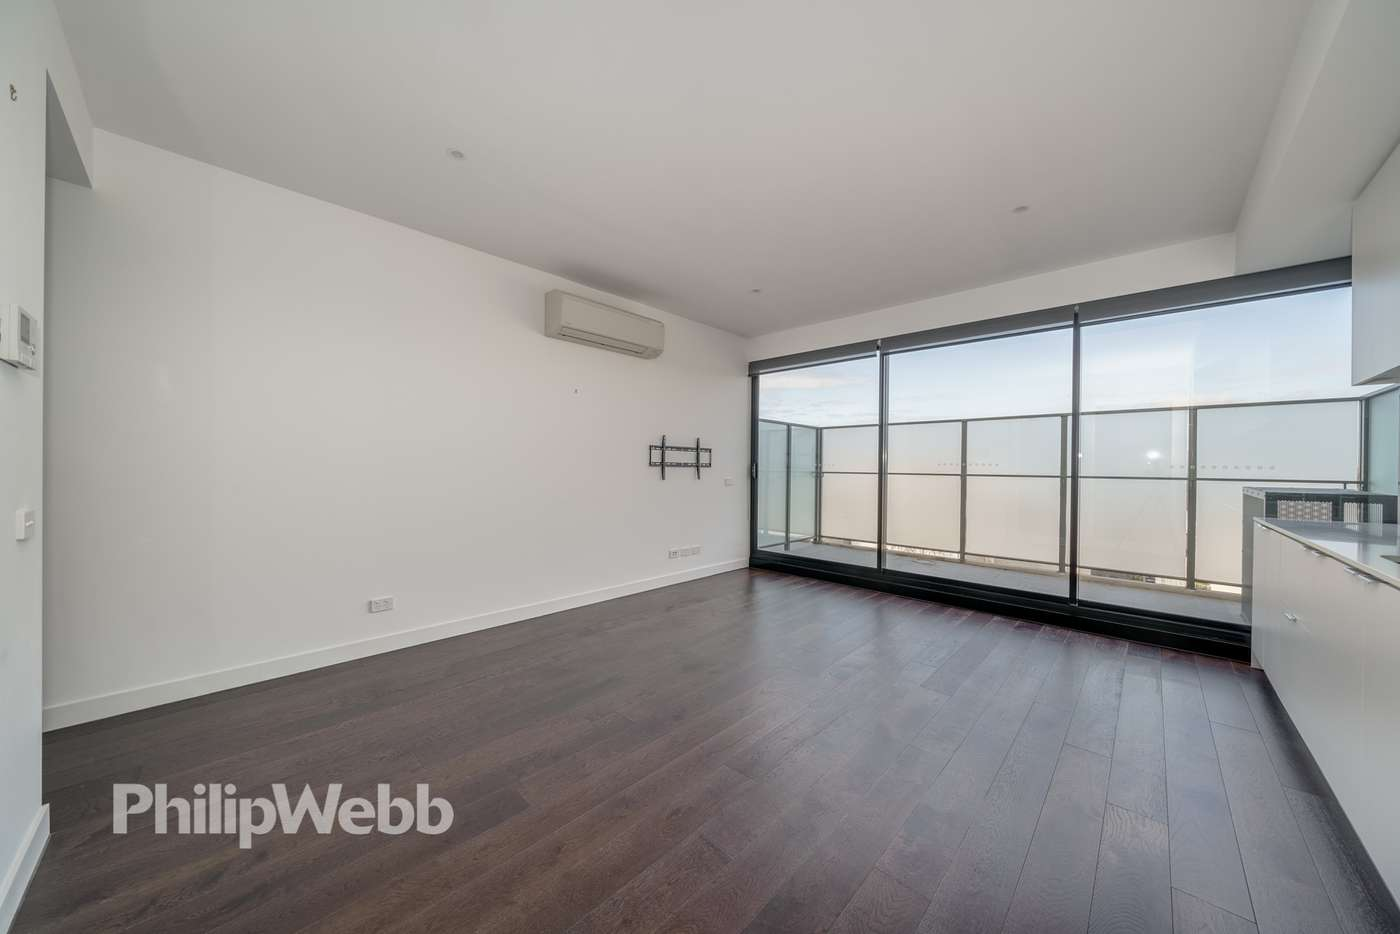 Sixth view of Homely apartment listing, 105/81-83 Tram Road, Doncaster VIC 3108